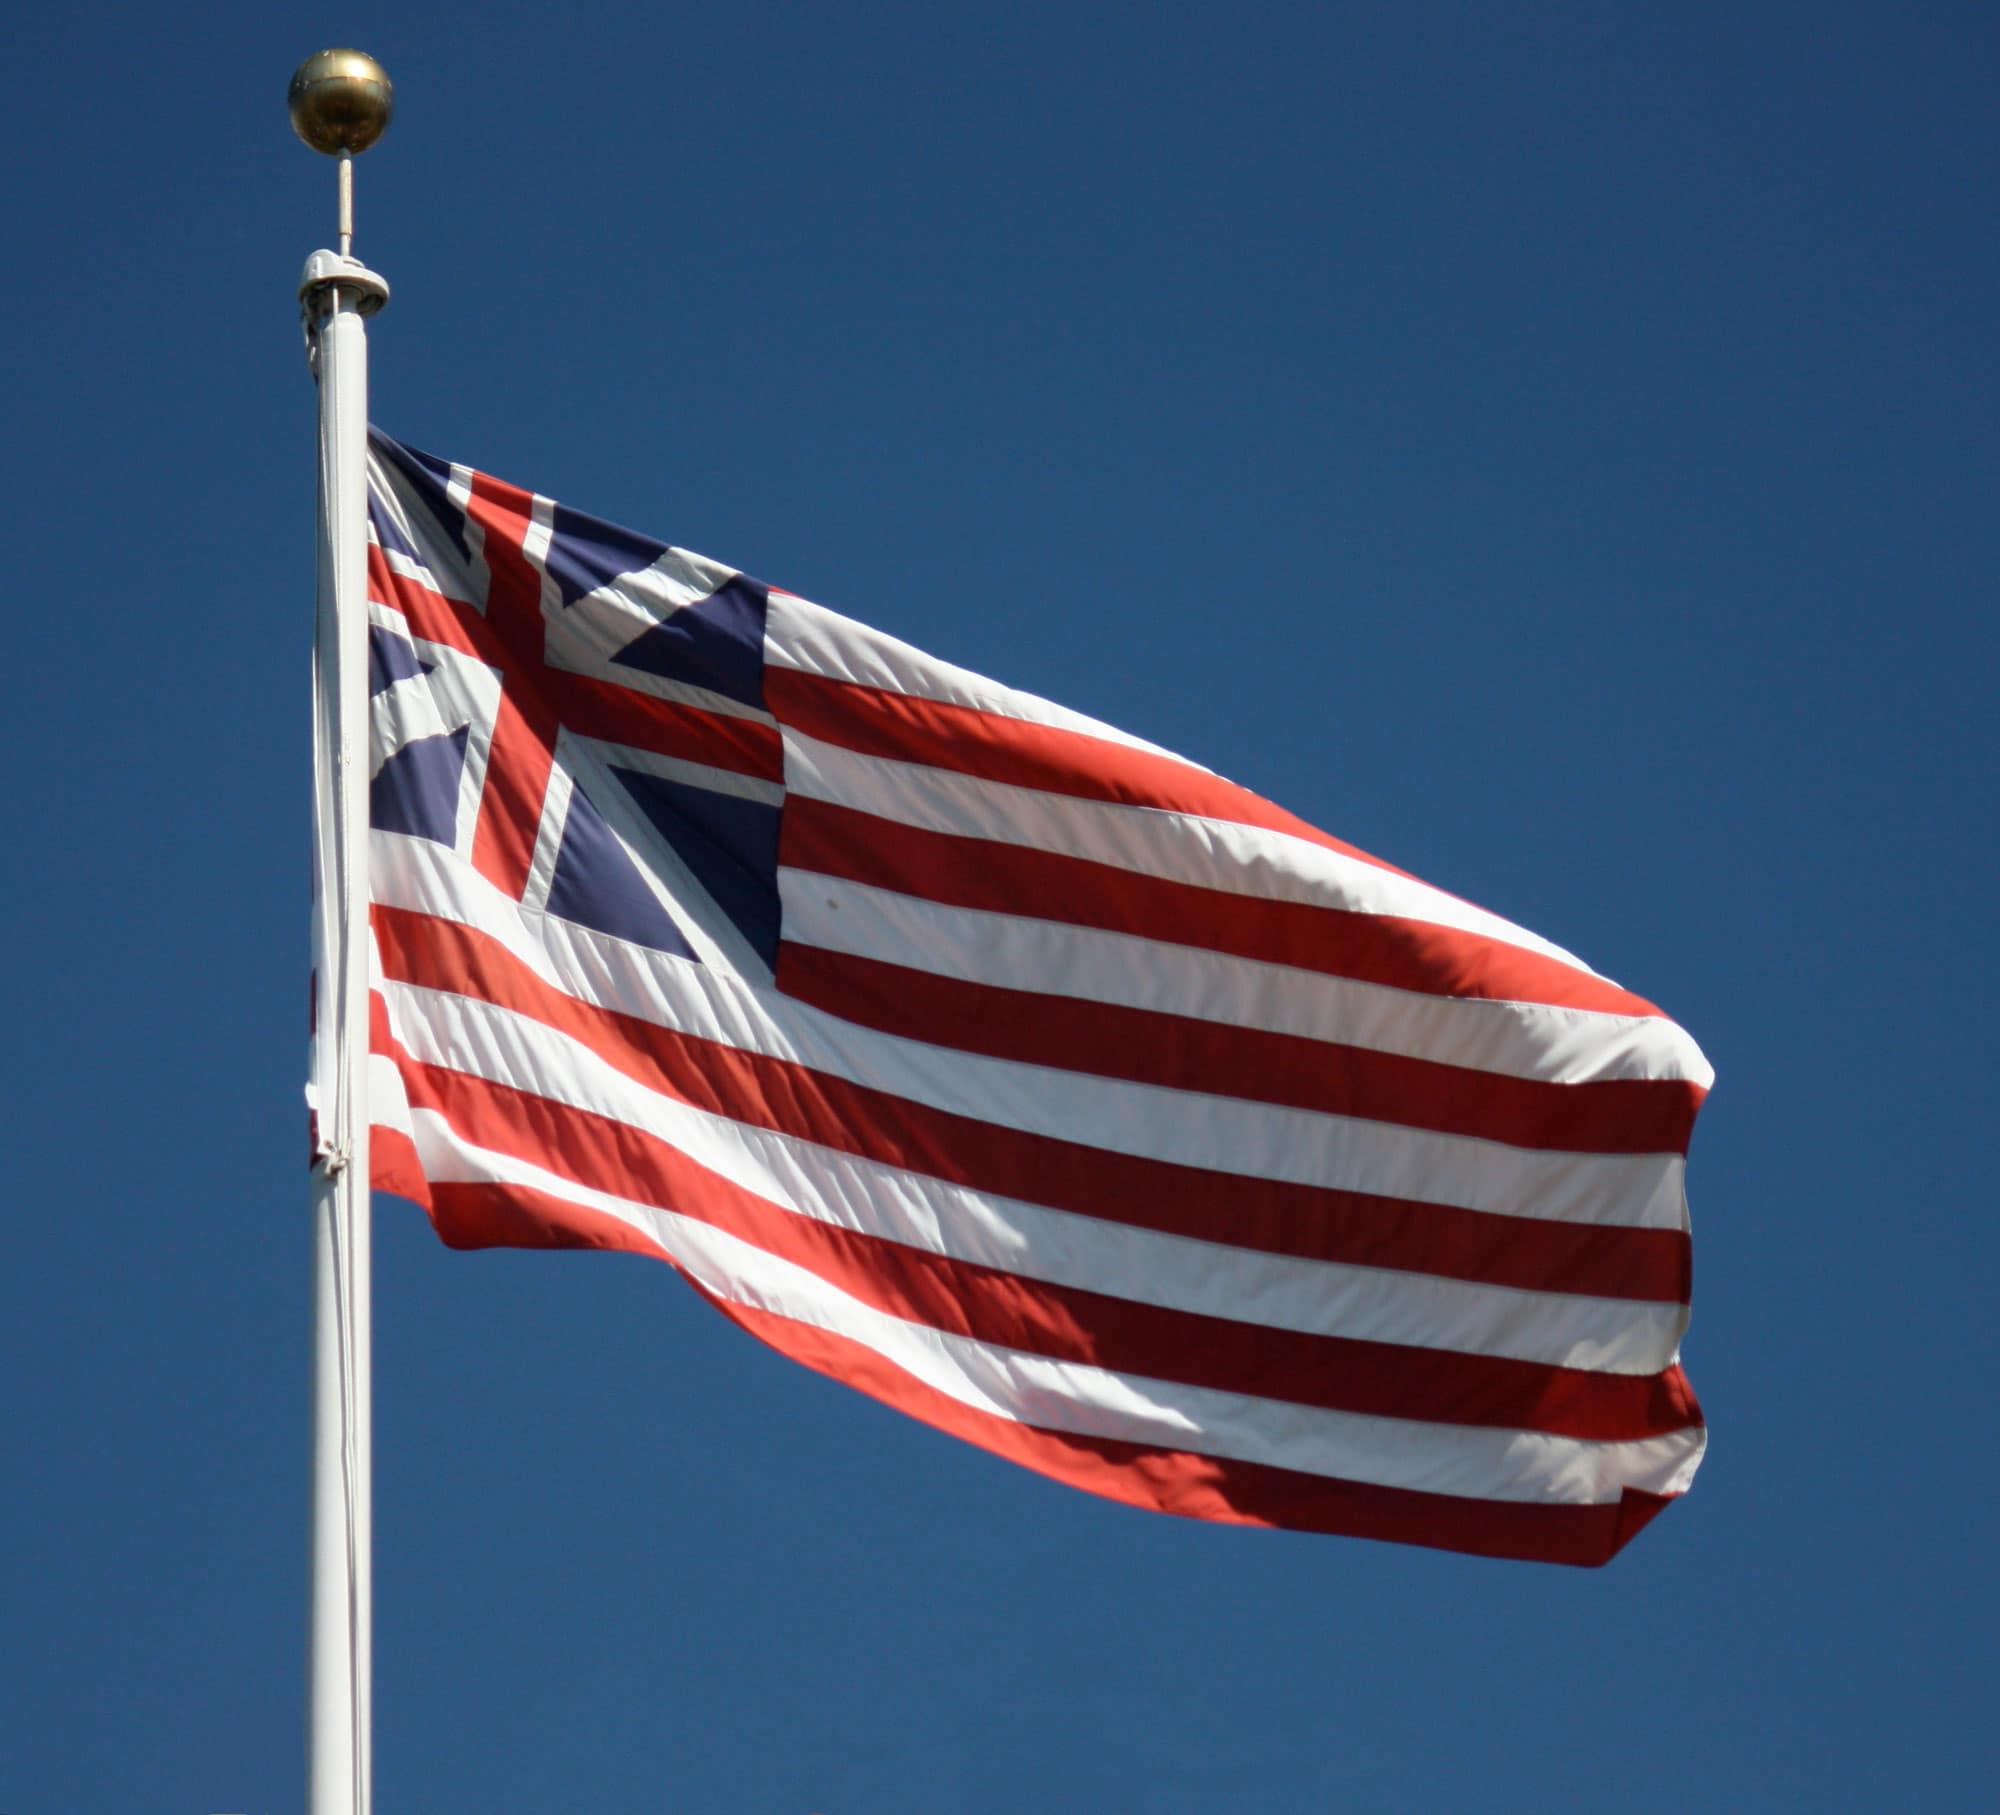 The Grand Union Flag consisting of thirteen alternate red and white stripes -the same as its immediate successor, the first national flag of the United States.